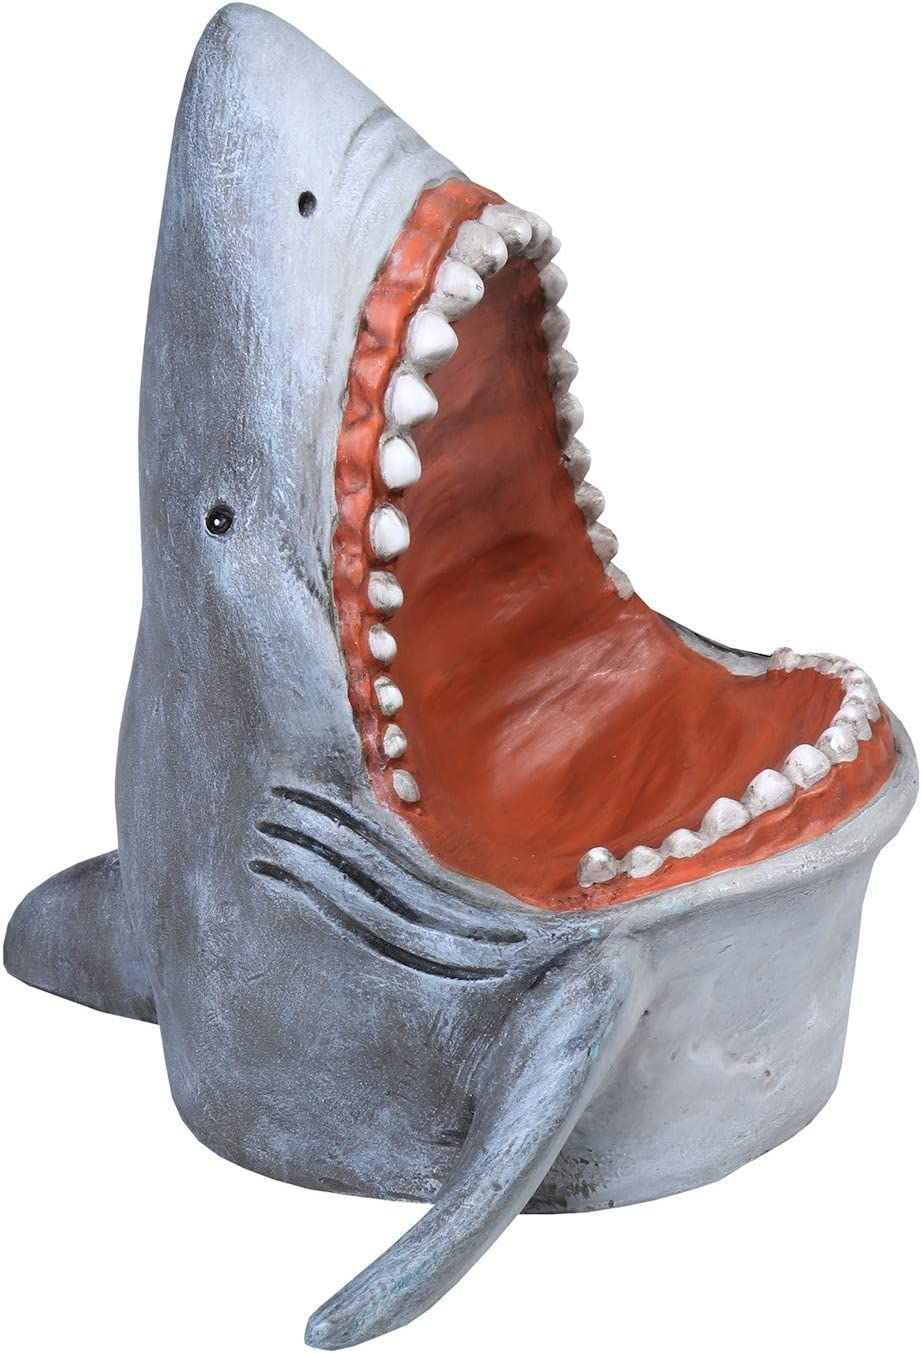 What on Earth Shark Cell Phone Holder - Great White Shark Universal Mobile Phone Holder, Sculpted Resin, 5 1/2""